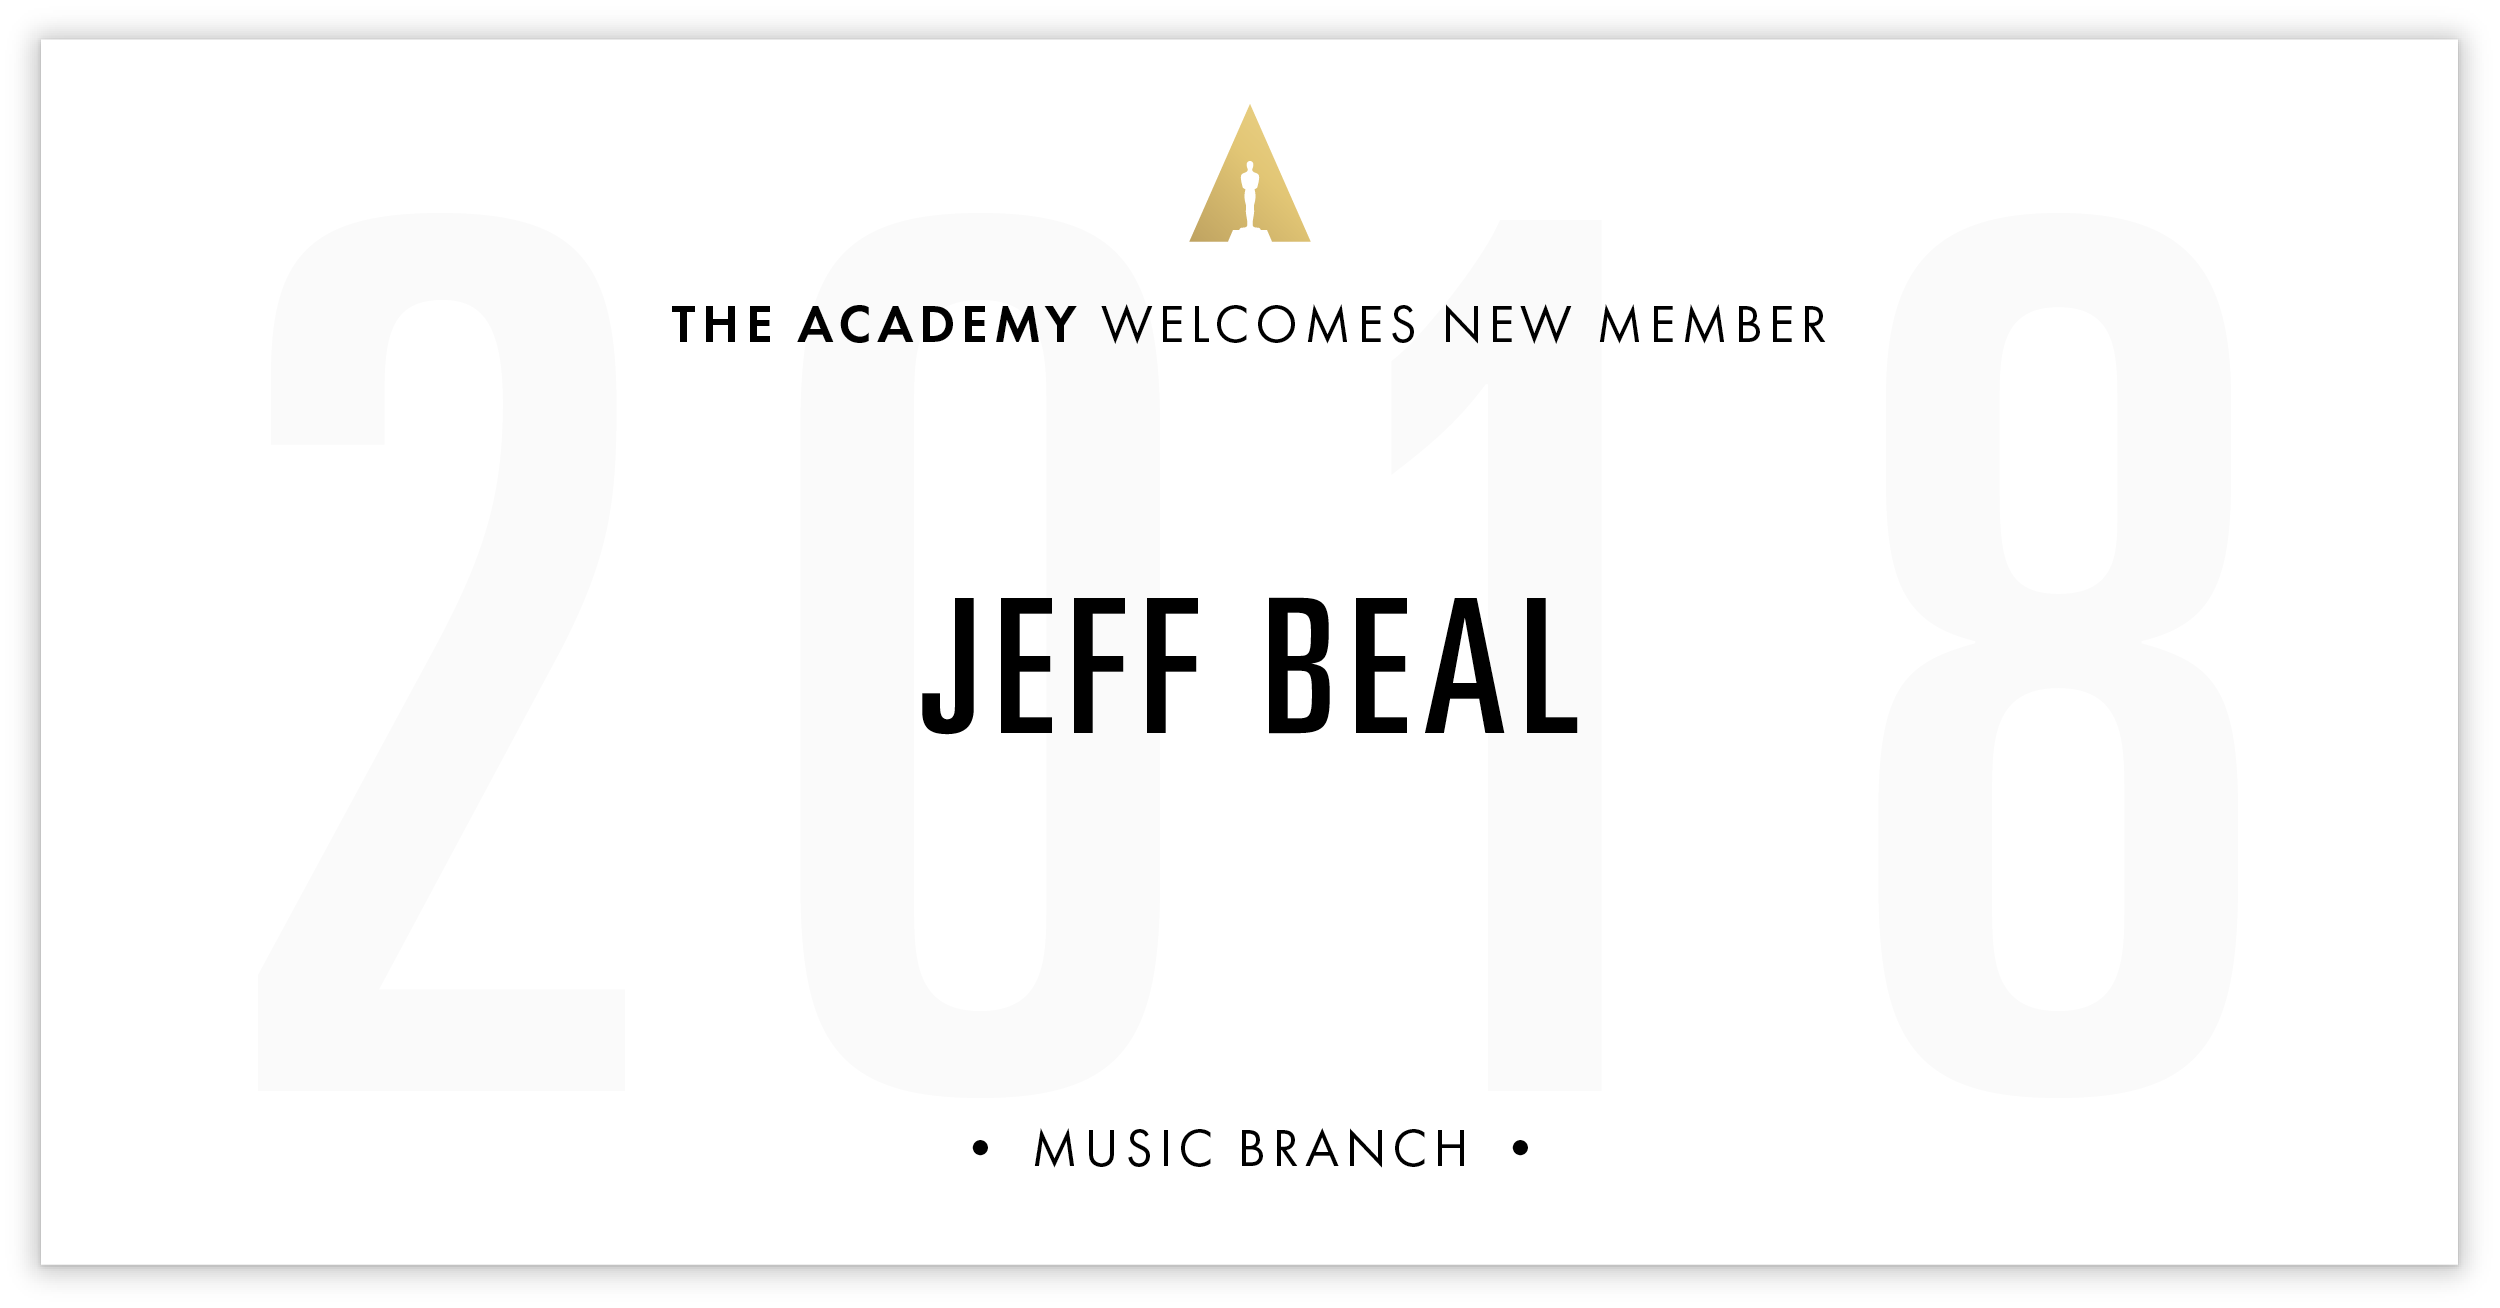 Jeff Beal is invited!